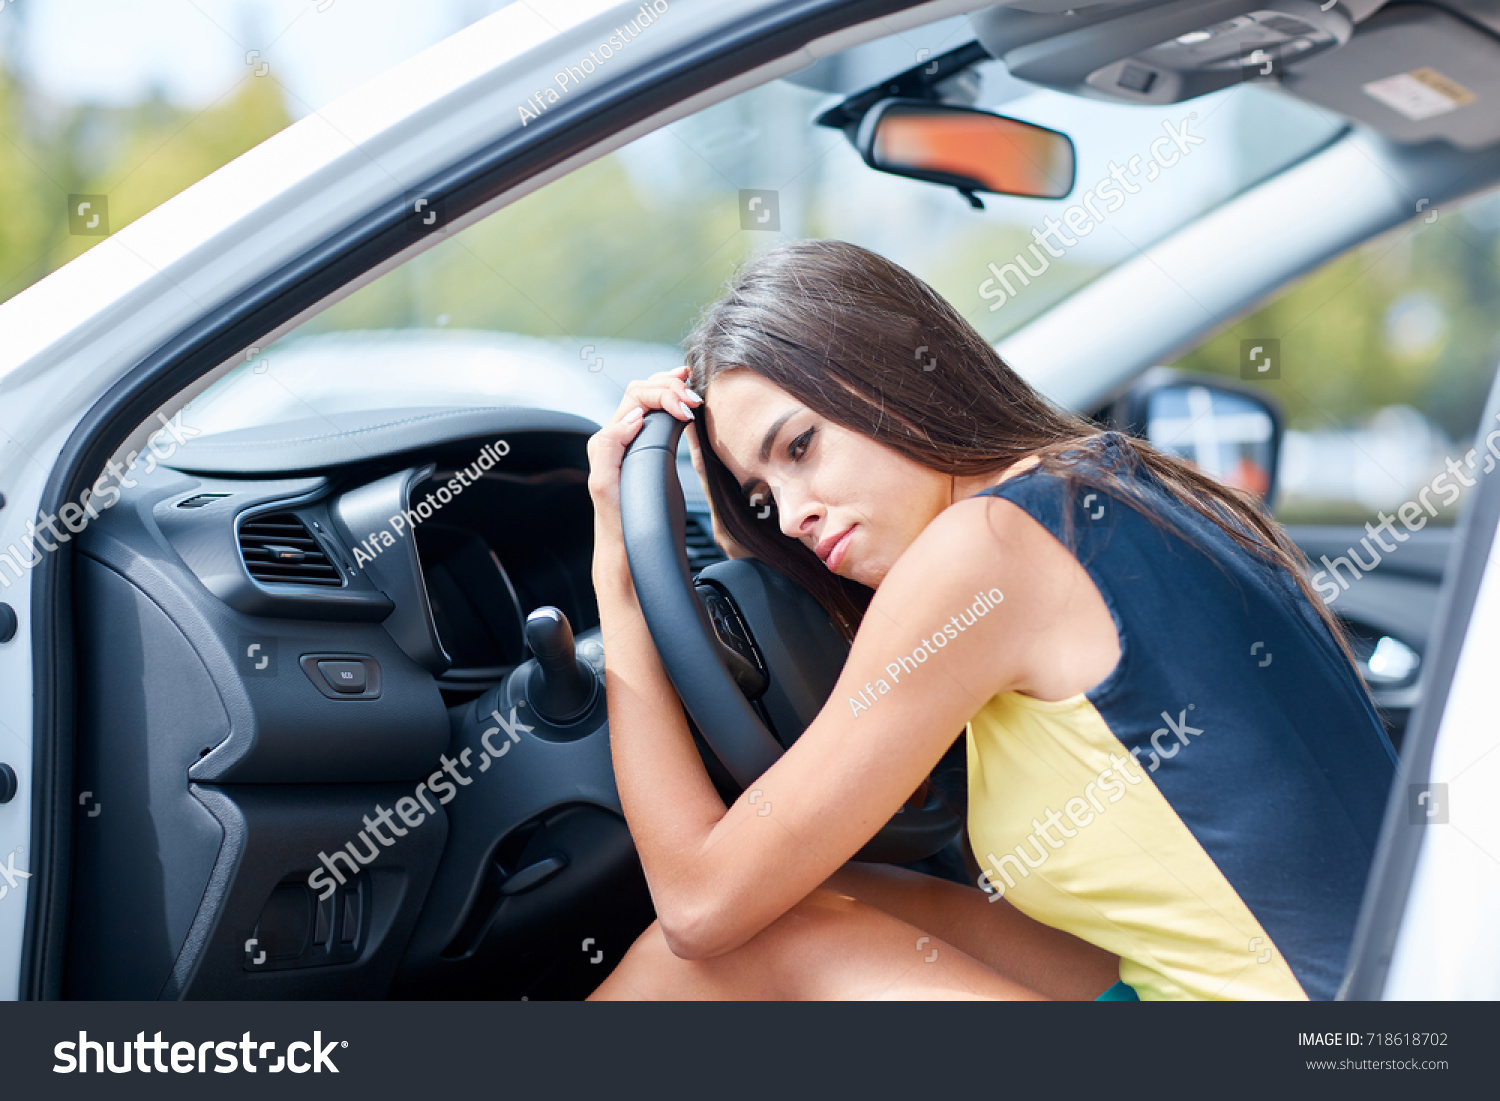 Buying A New Car Girl Came Showroom Buy New Car Stock Photo Edit Now 718618702